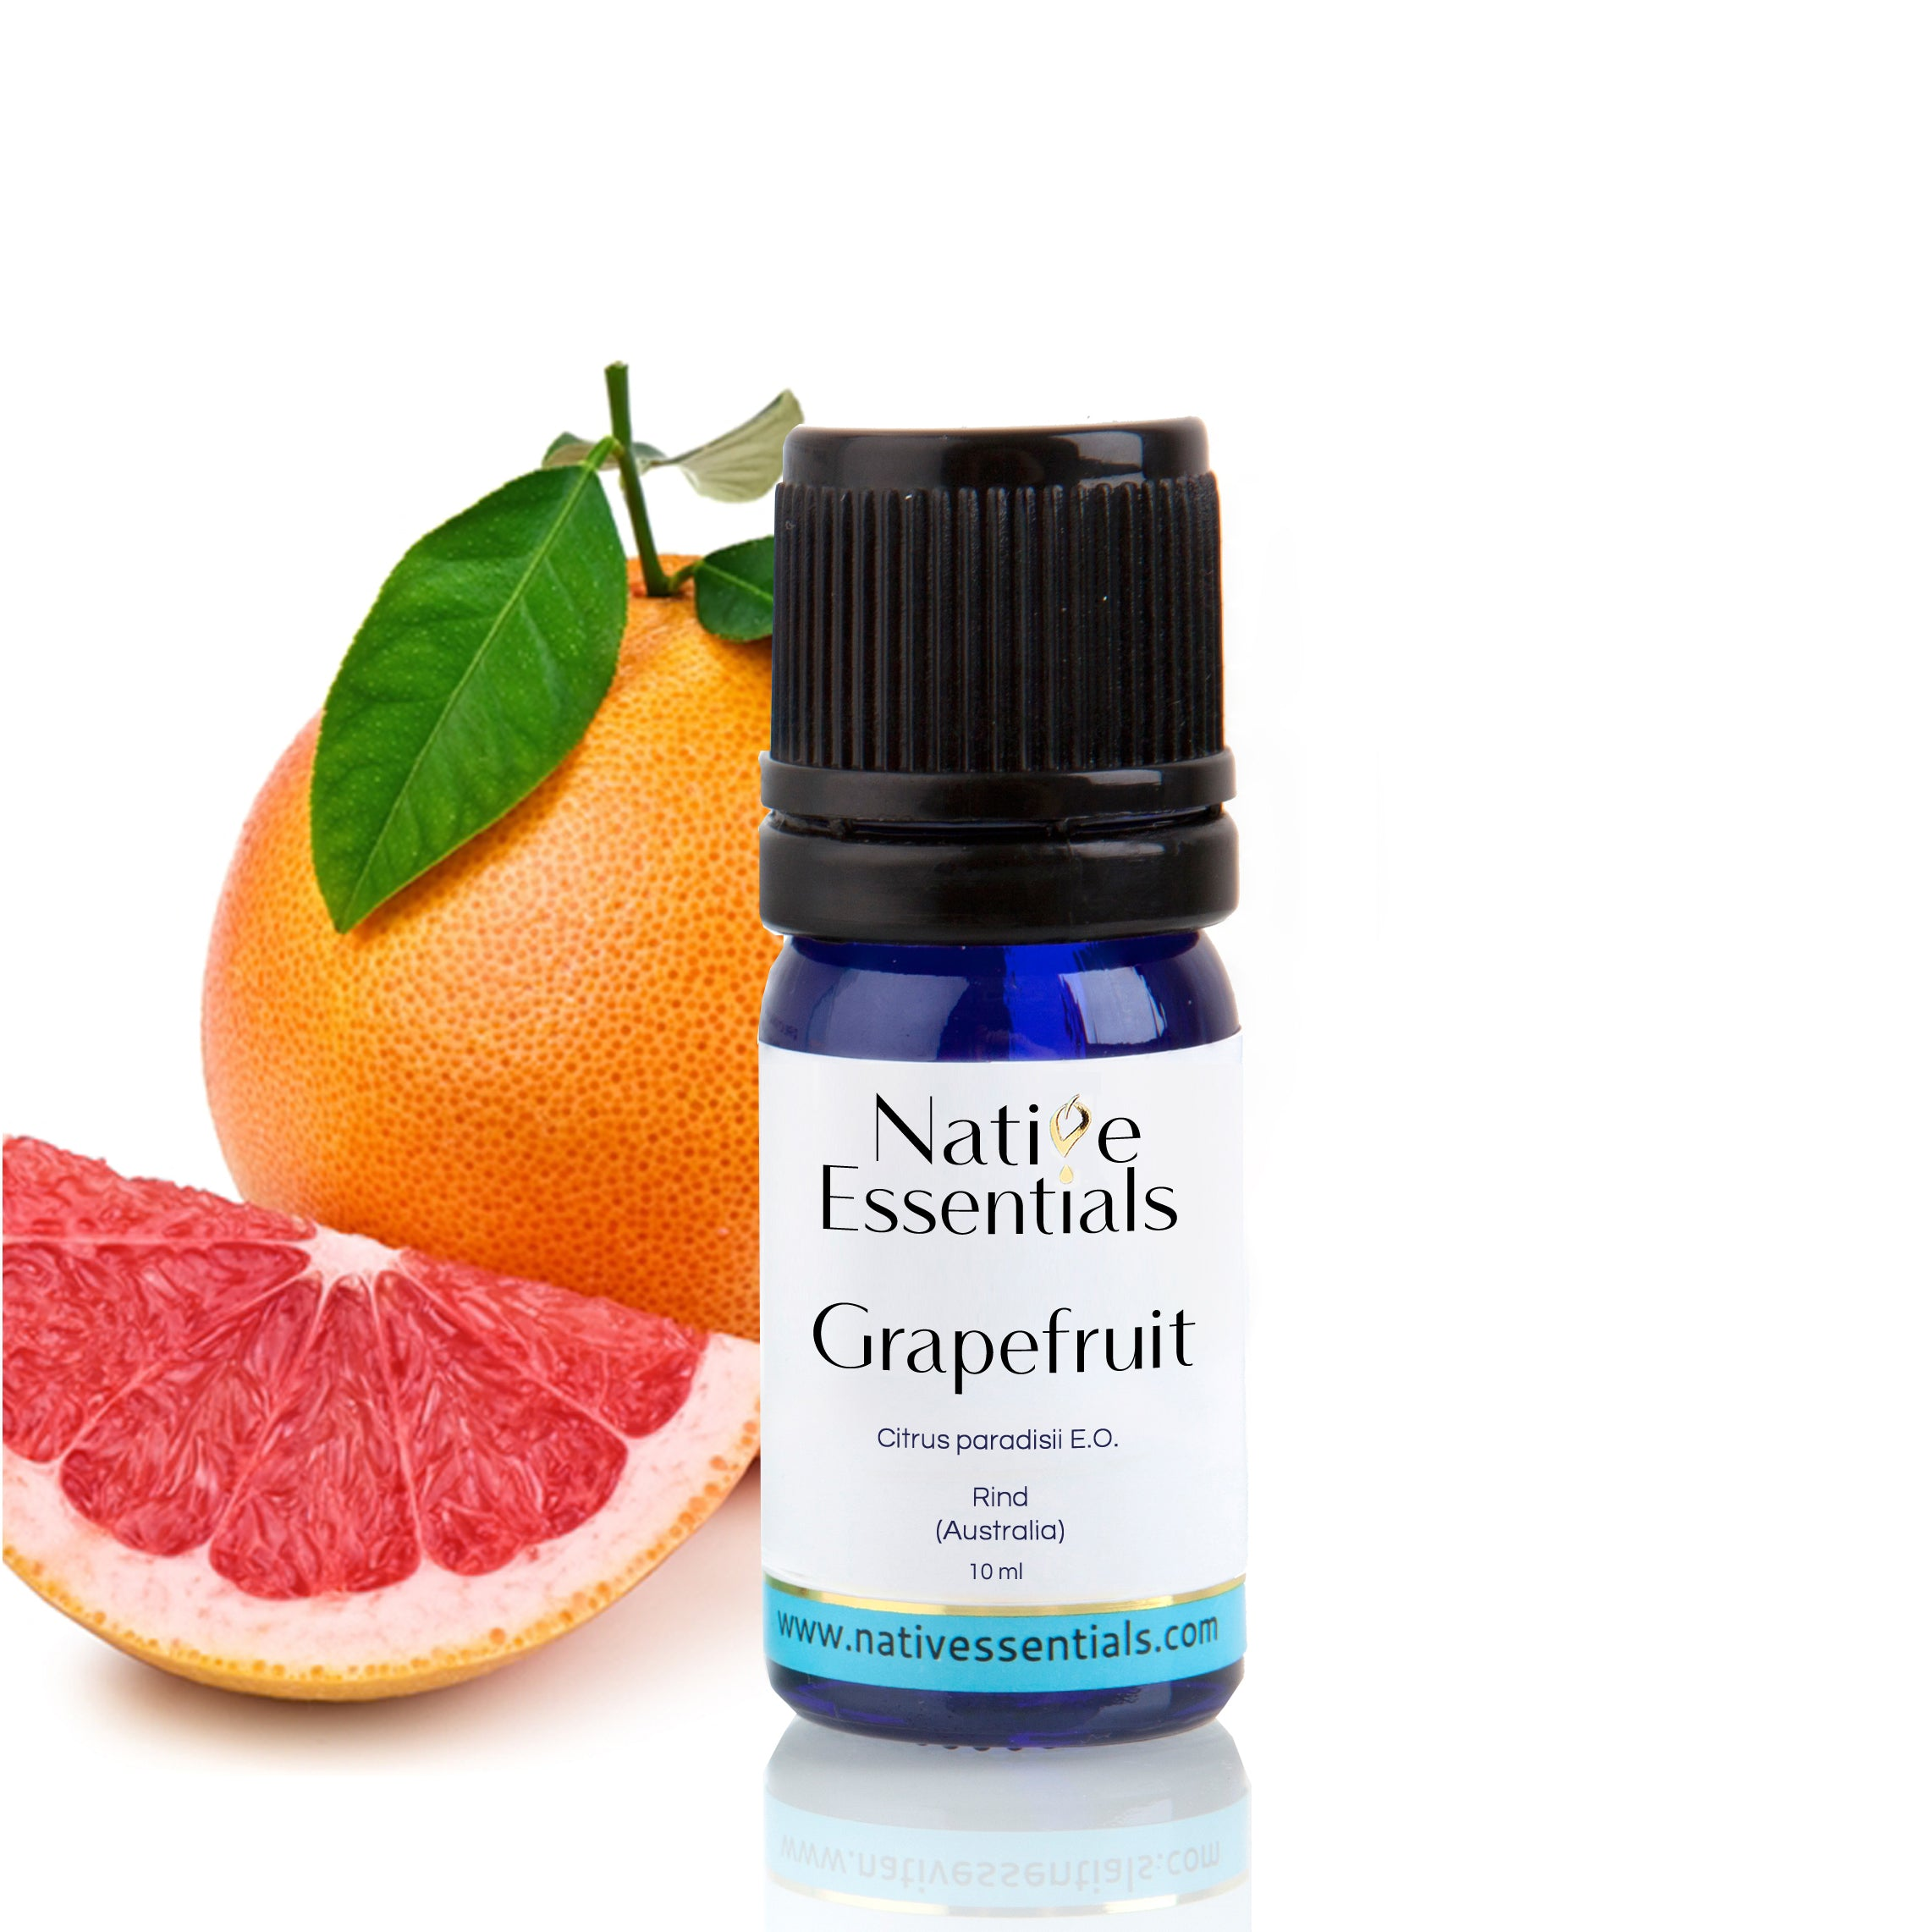 Grapefruit Pink Essential Oil (Australia) - Native Essentials